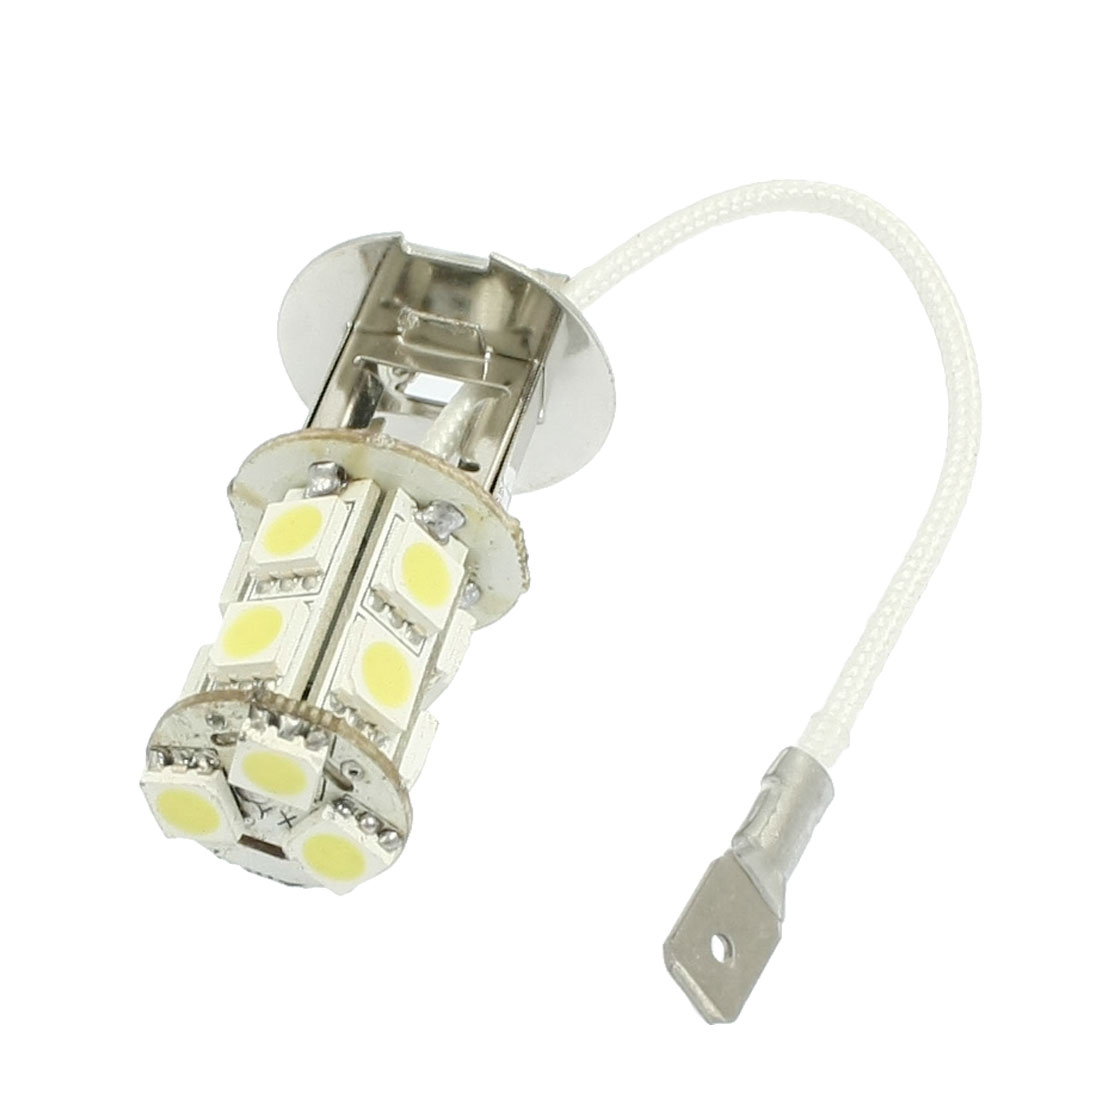 H3 5050 SMD White 13 LED Car Headlight Fog Light Bulb Lamp DC 12V